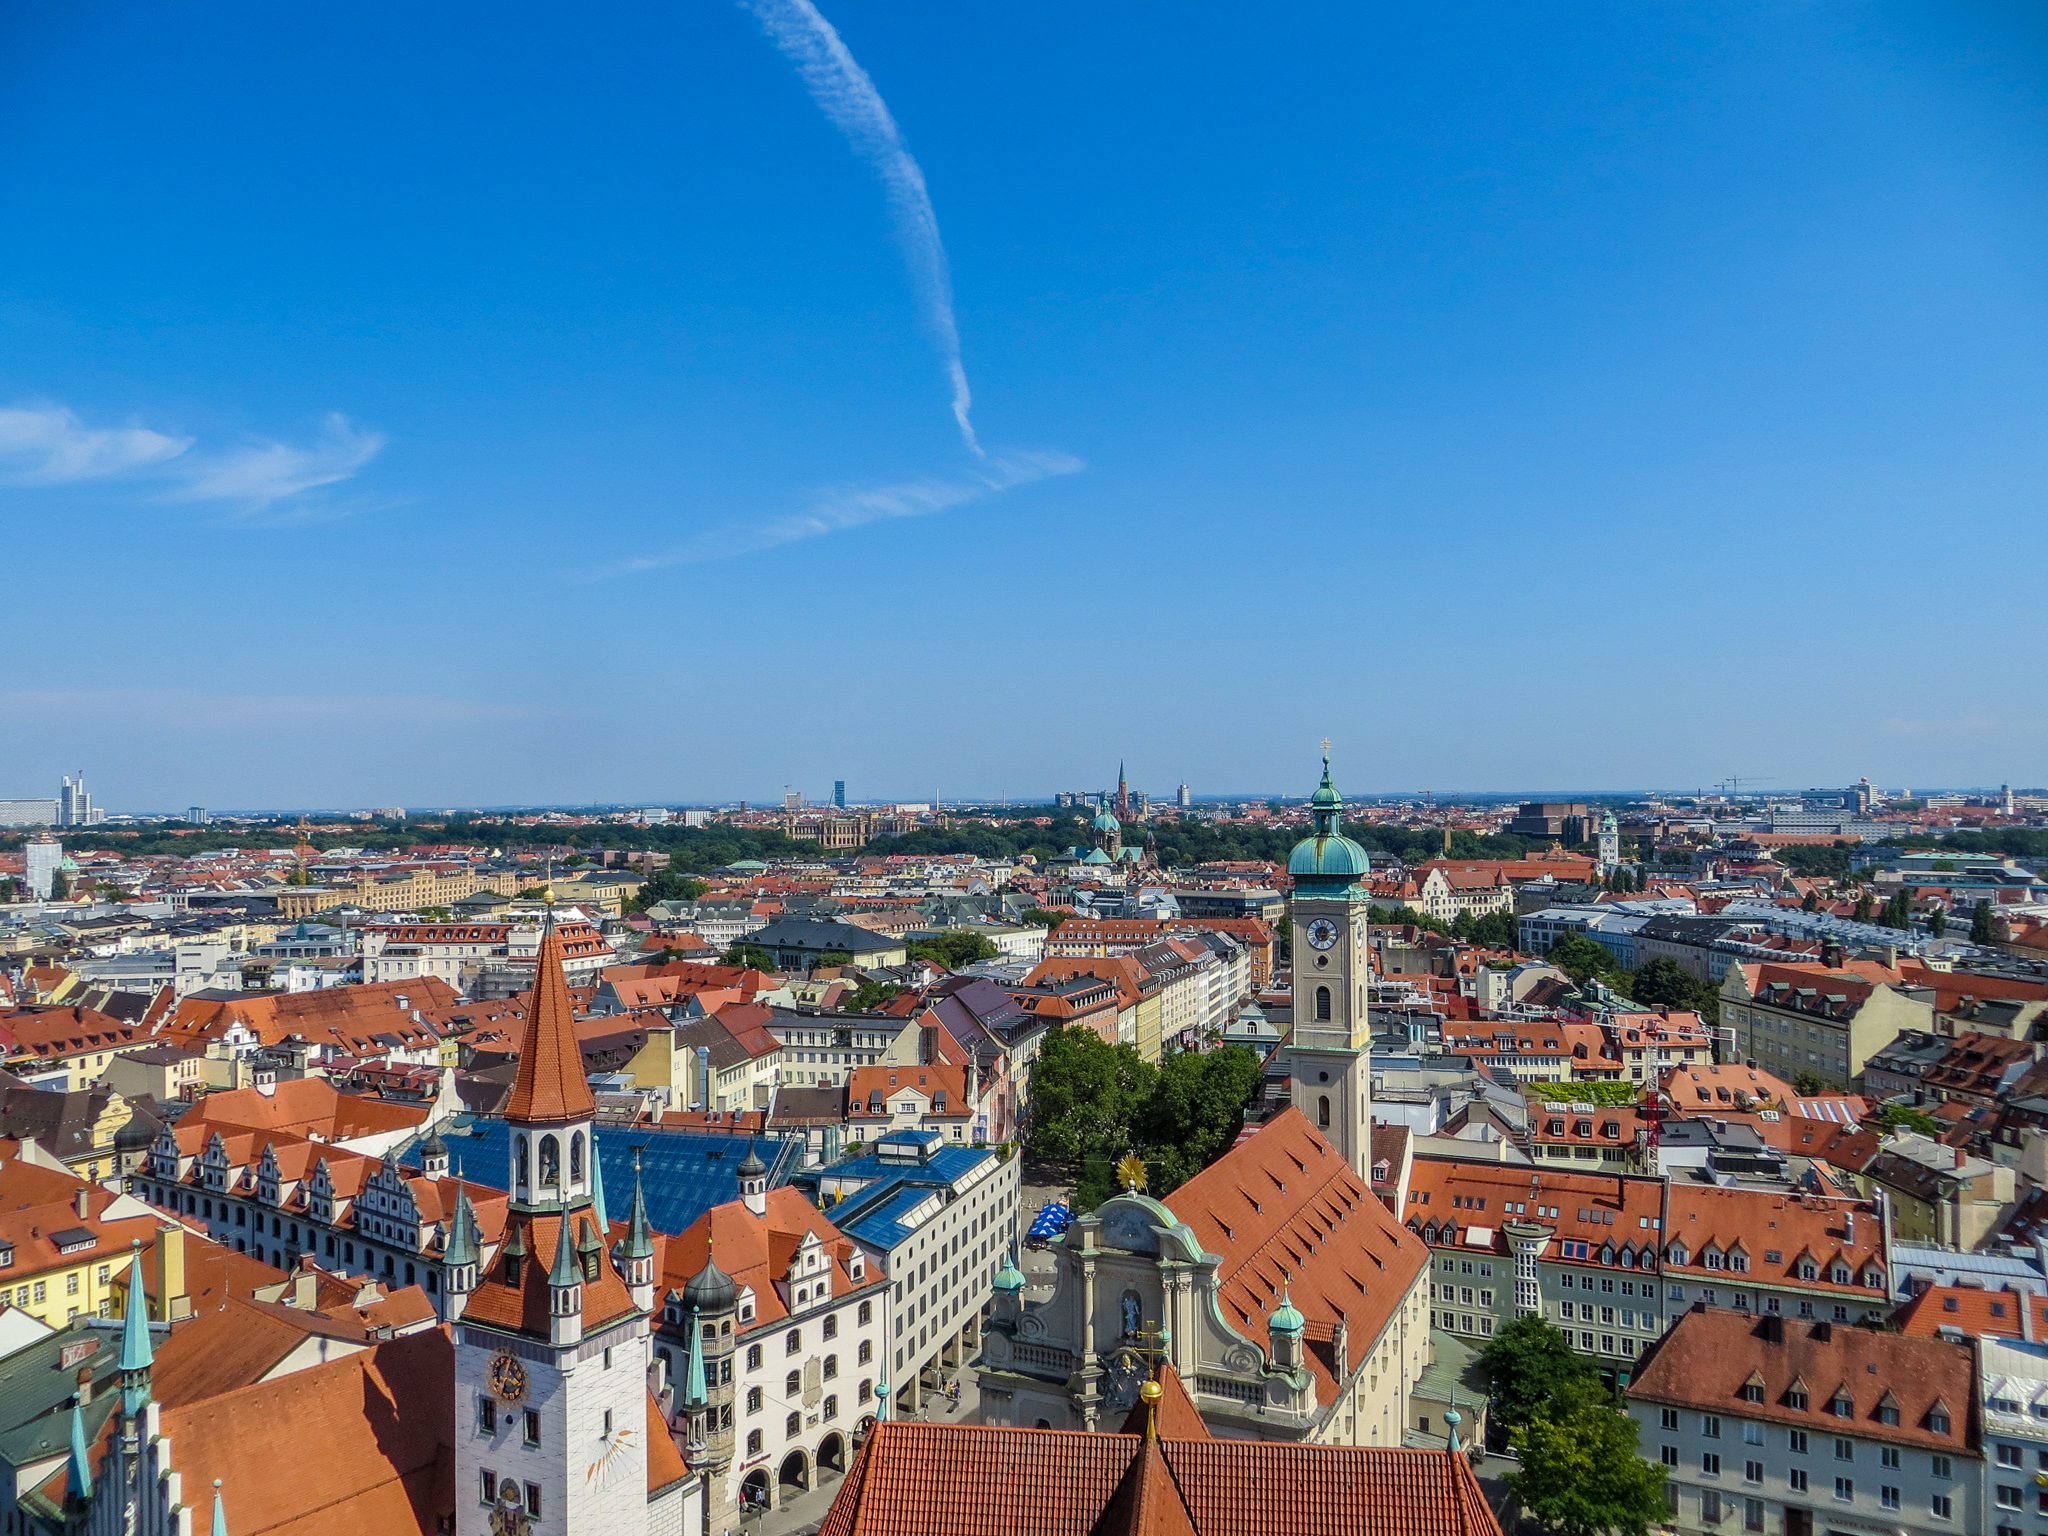 backpacking europe in 2 weeks: visiting munich is always a good idea